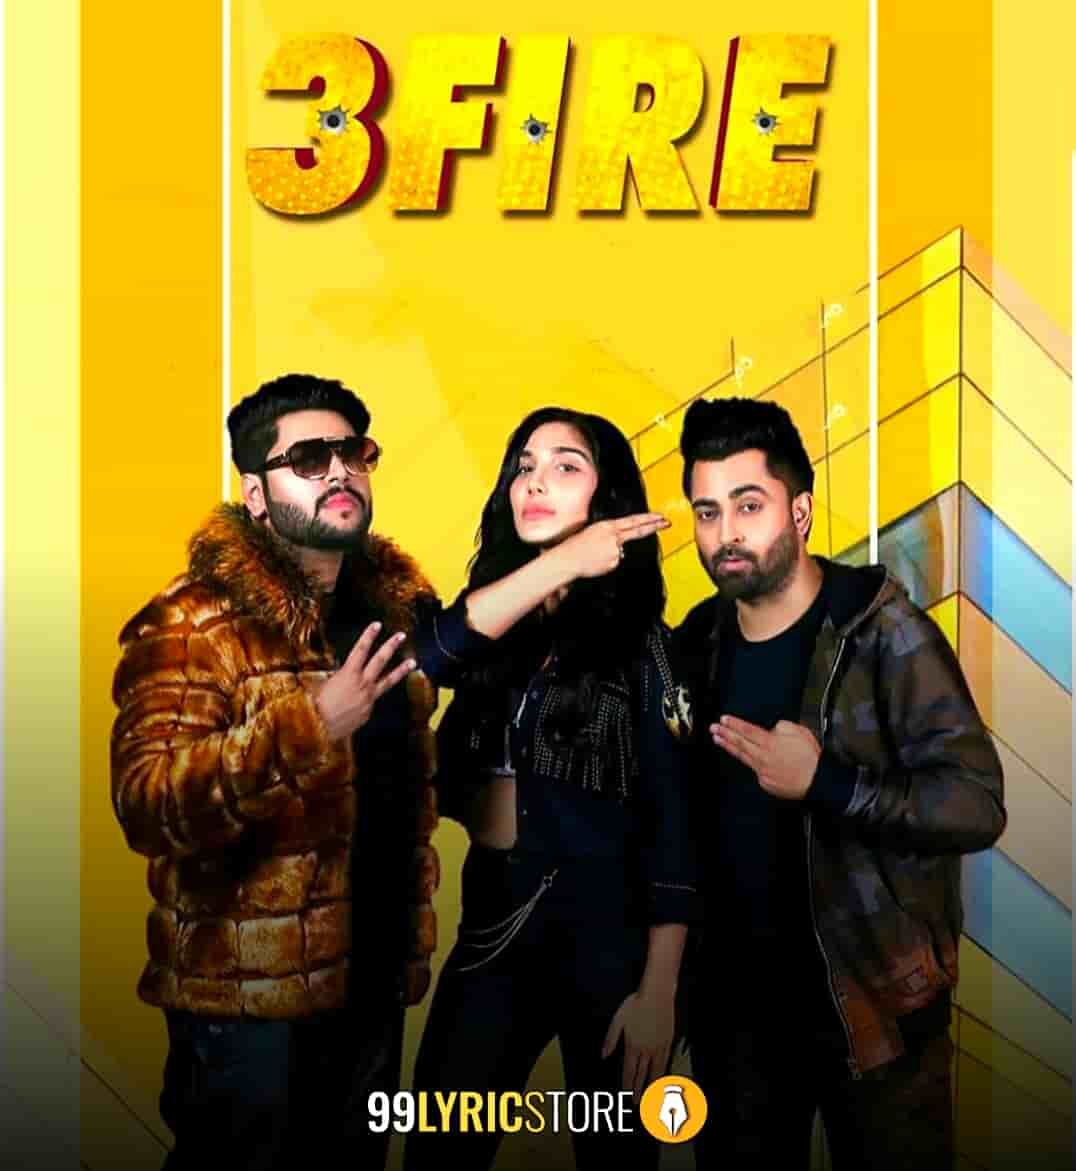 3 Fire Punjabi song sung by sharry maan ft. Swaalina